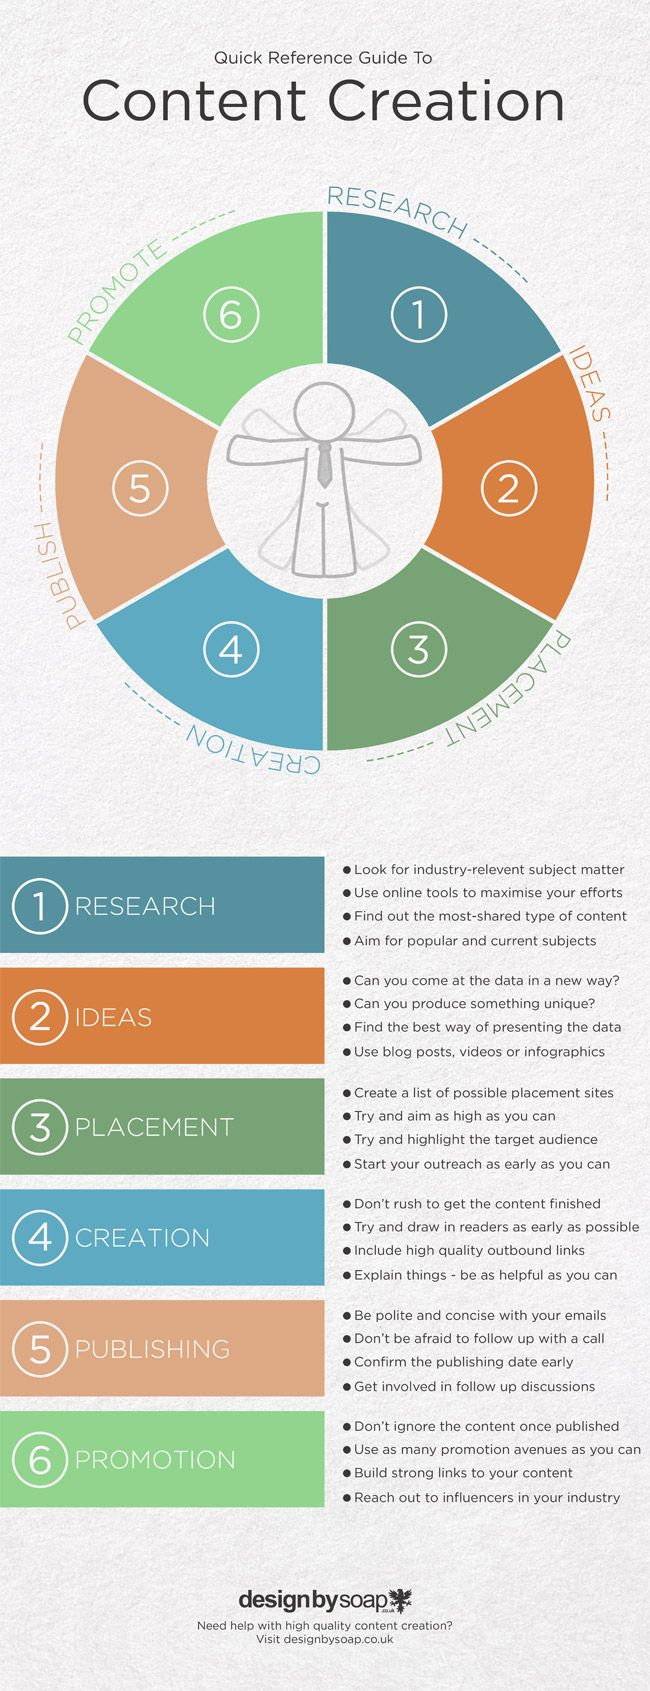 6 Steps to Creating Great Content  Don't we all need this in all of our media?  Great steps!